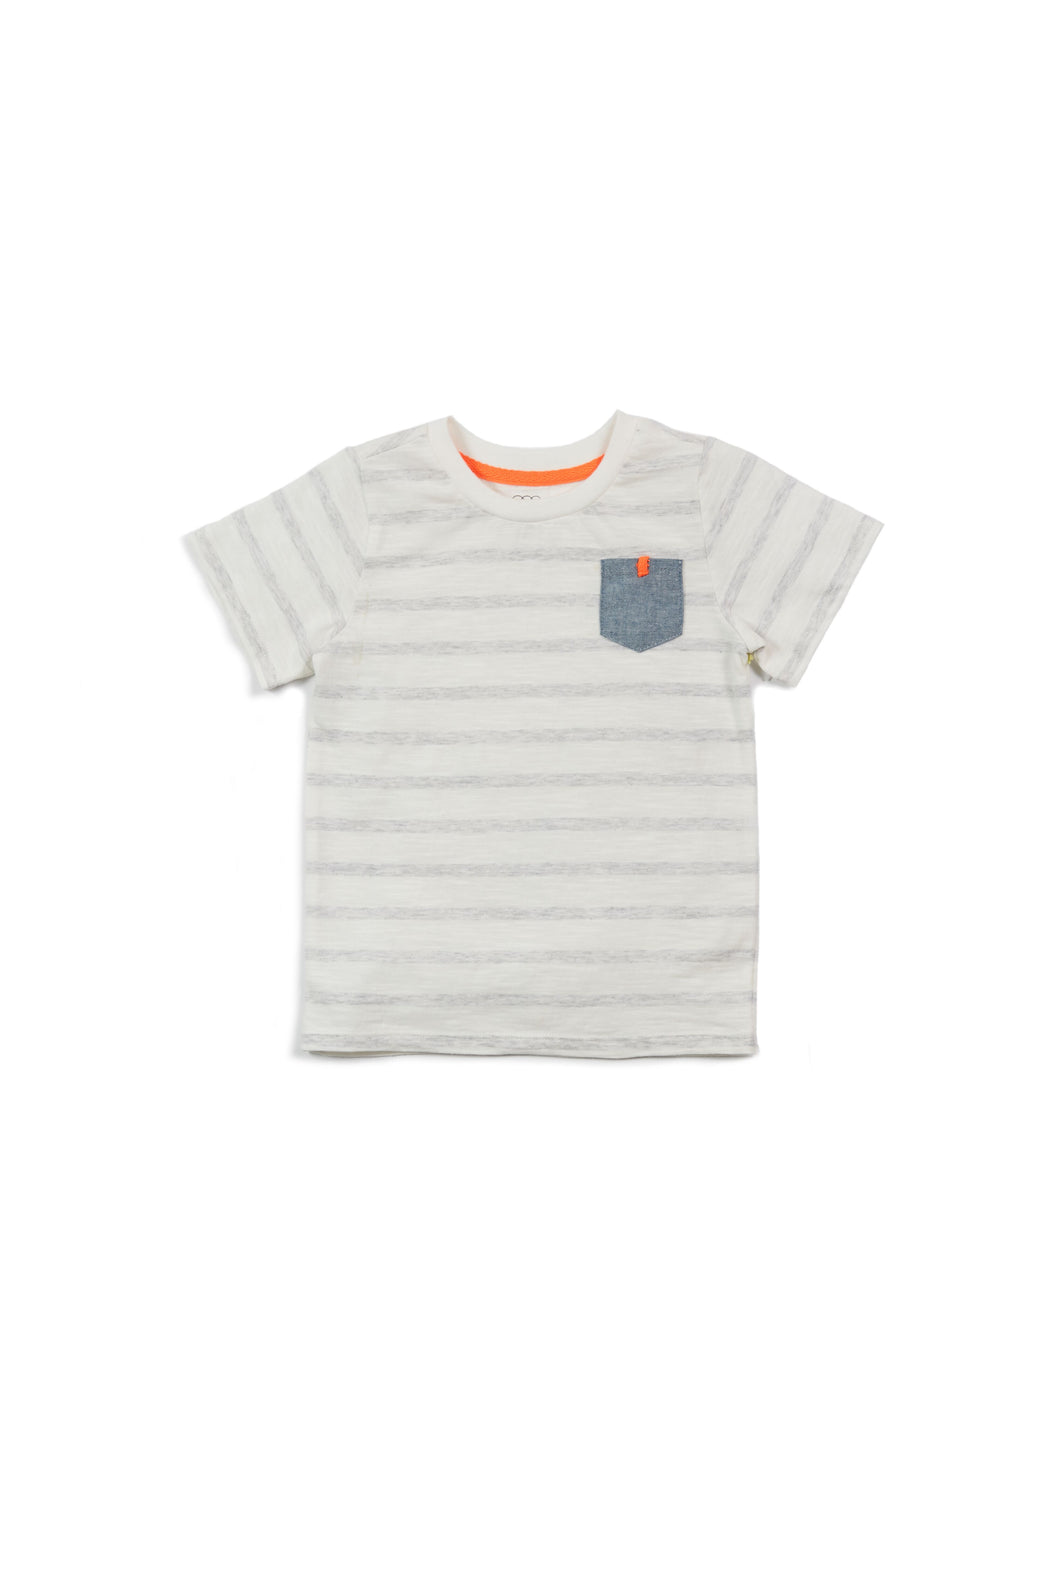 Shane Pocket Tee